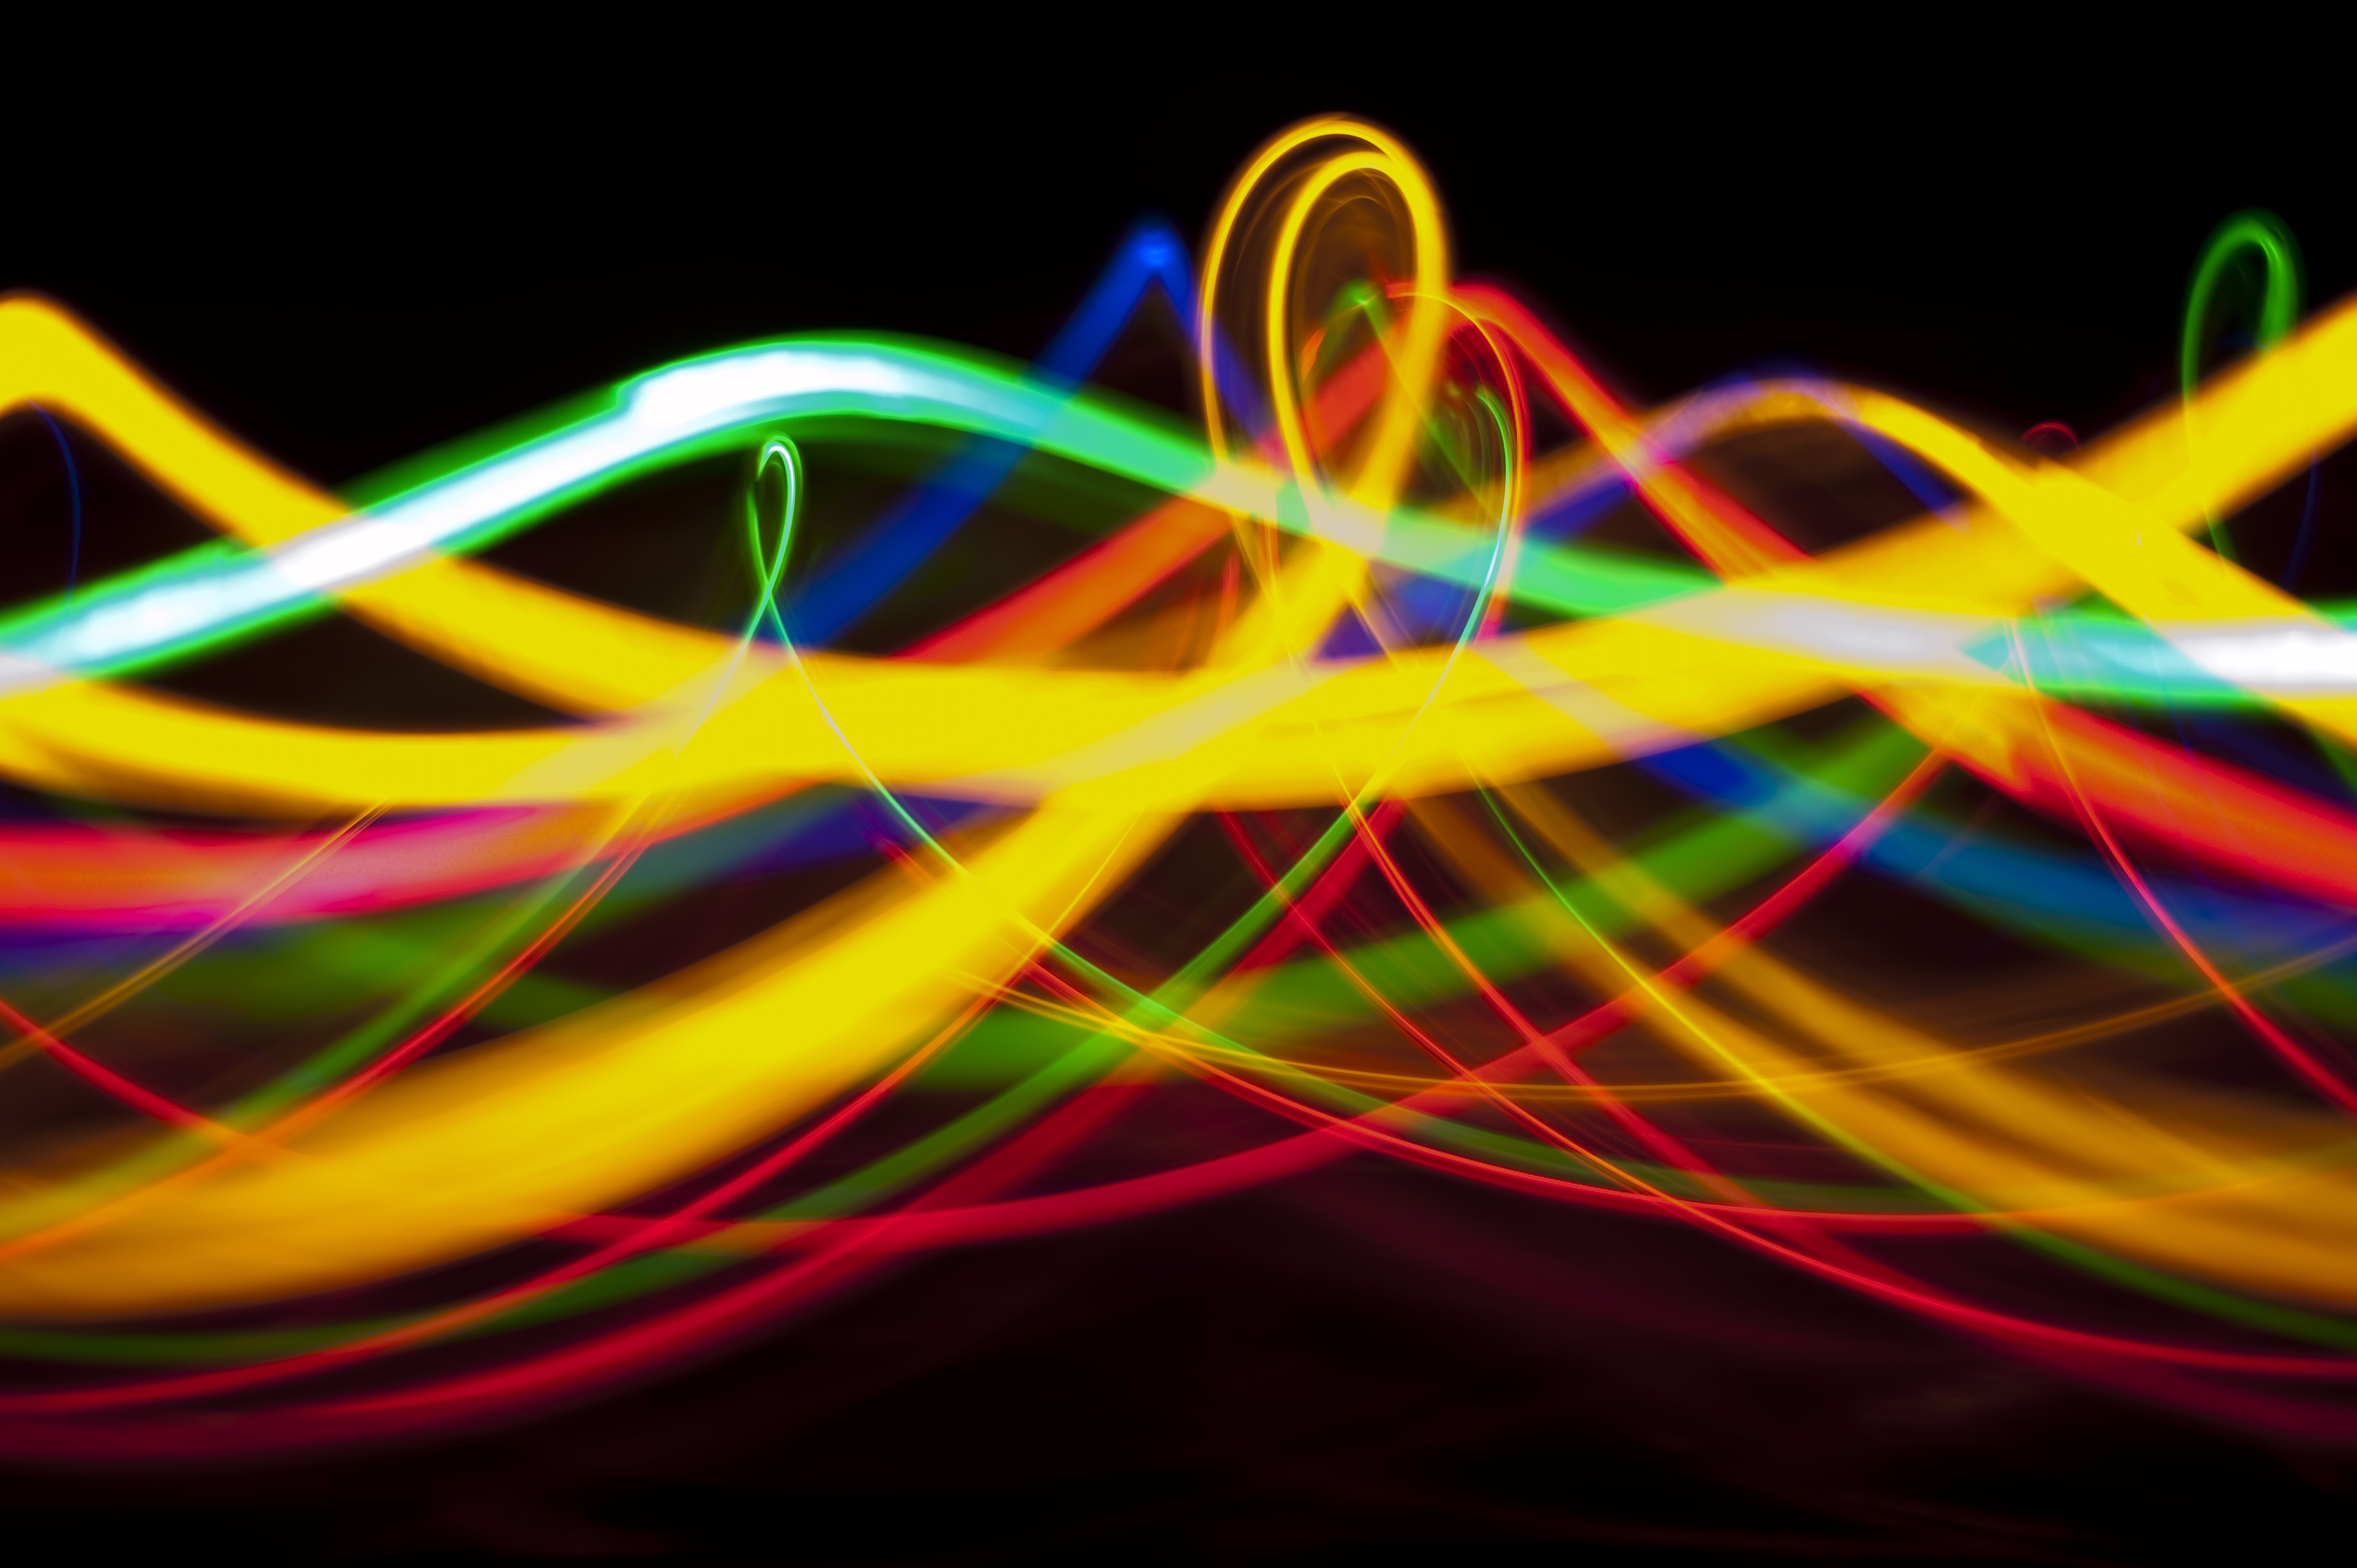 a vibrant corkscrew of colourful light trails on black background